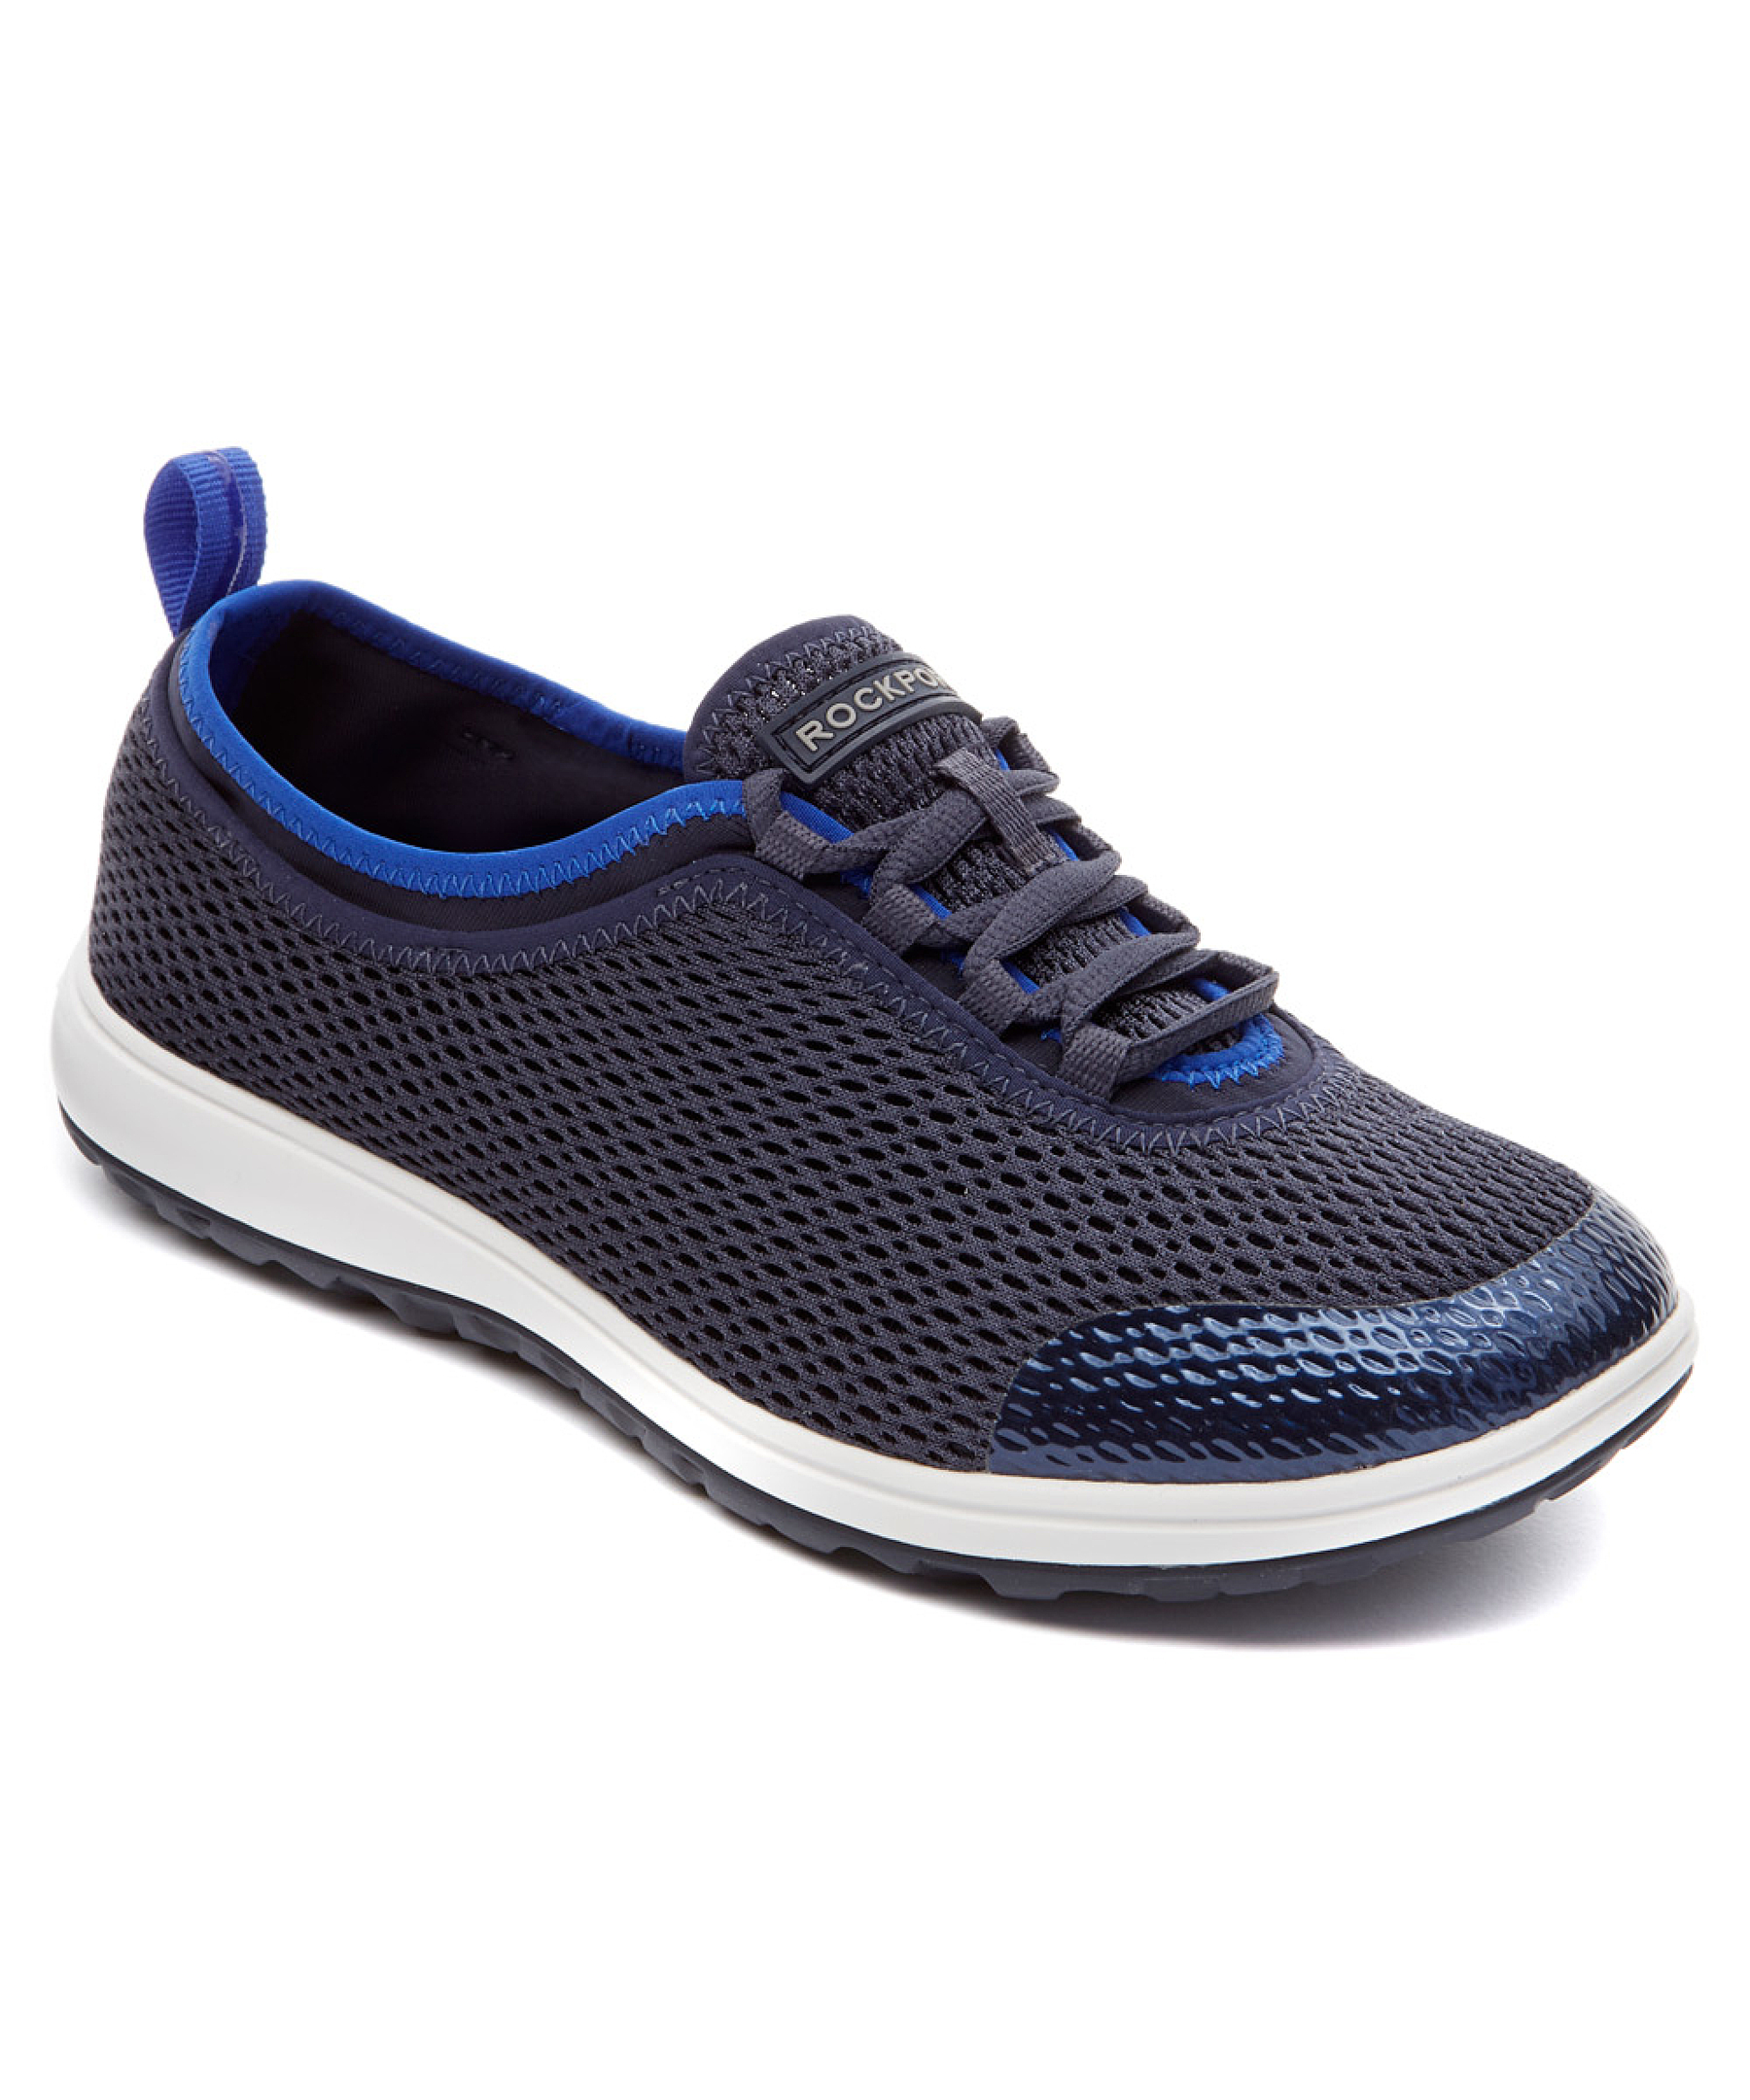 Rockport Mens Lace Up Mesh Shoes